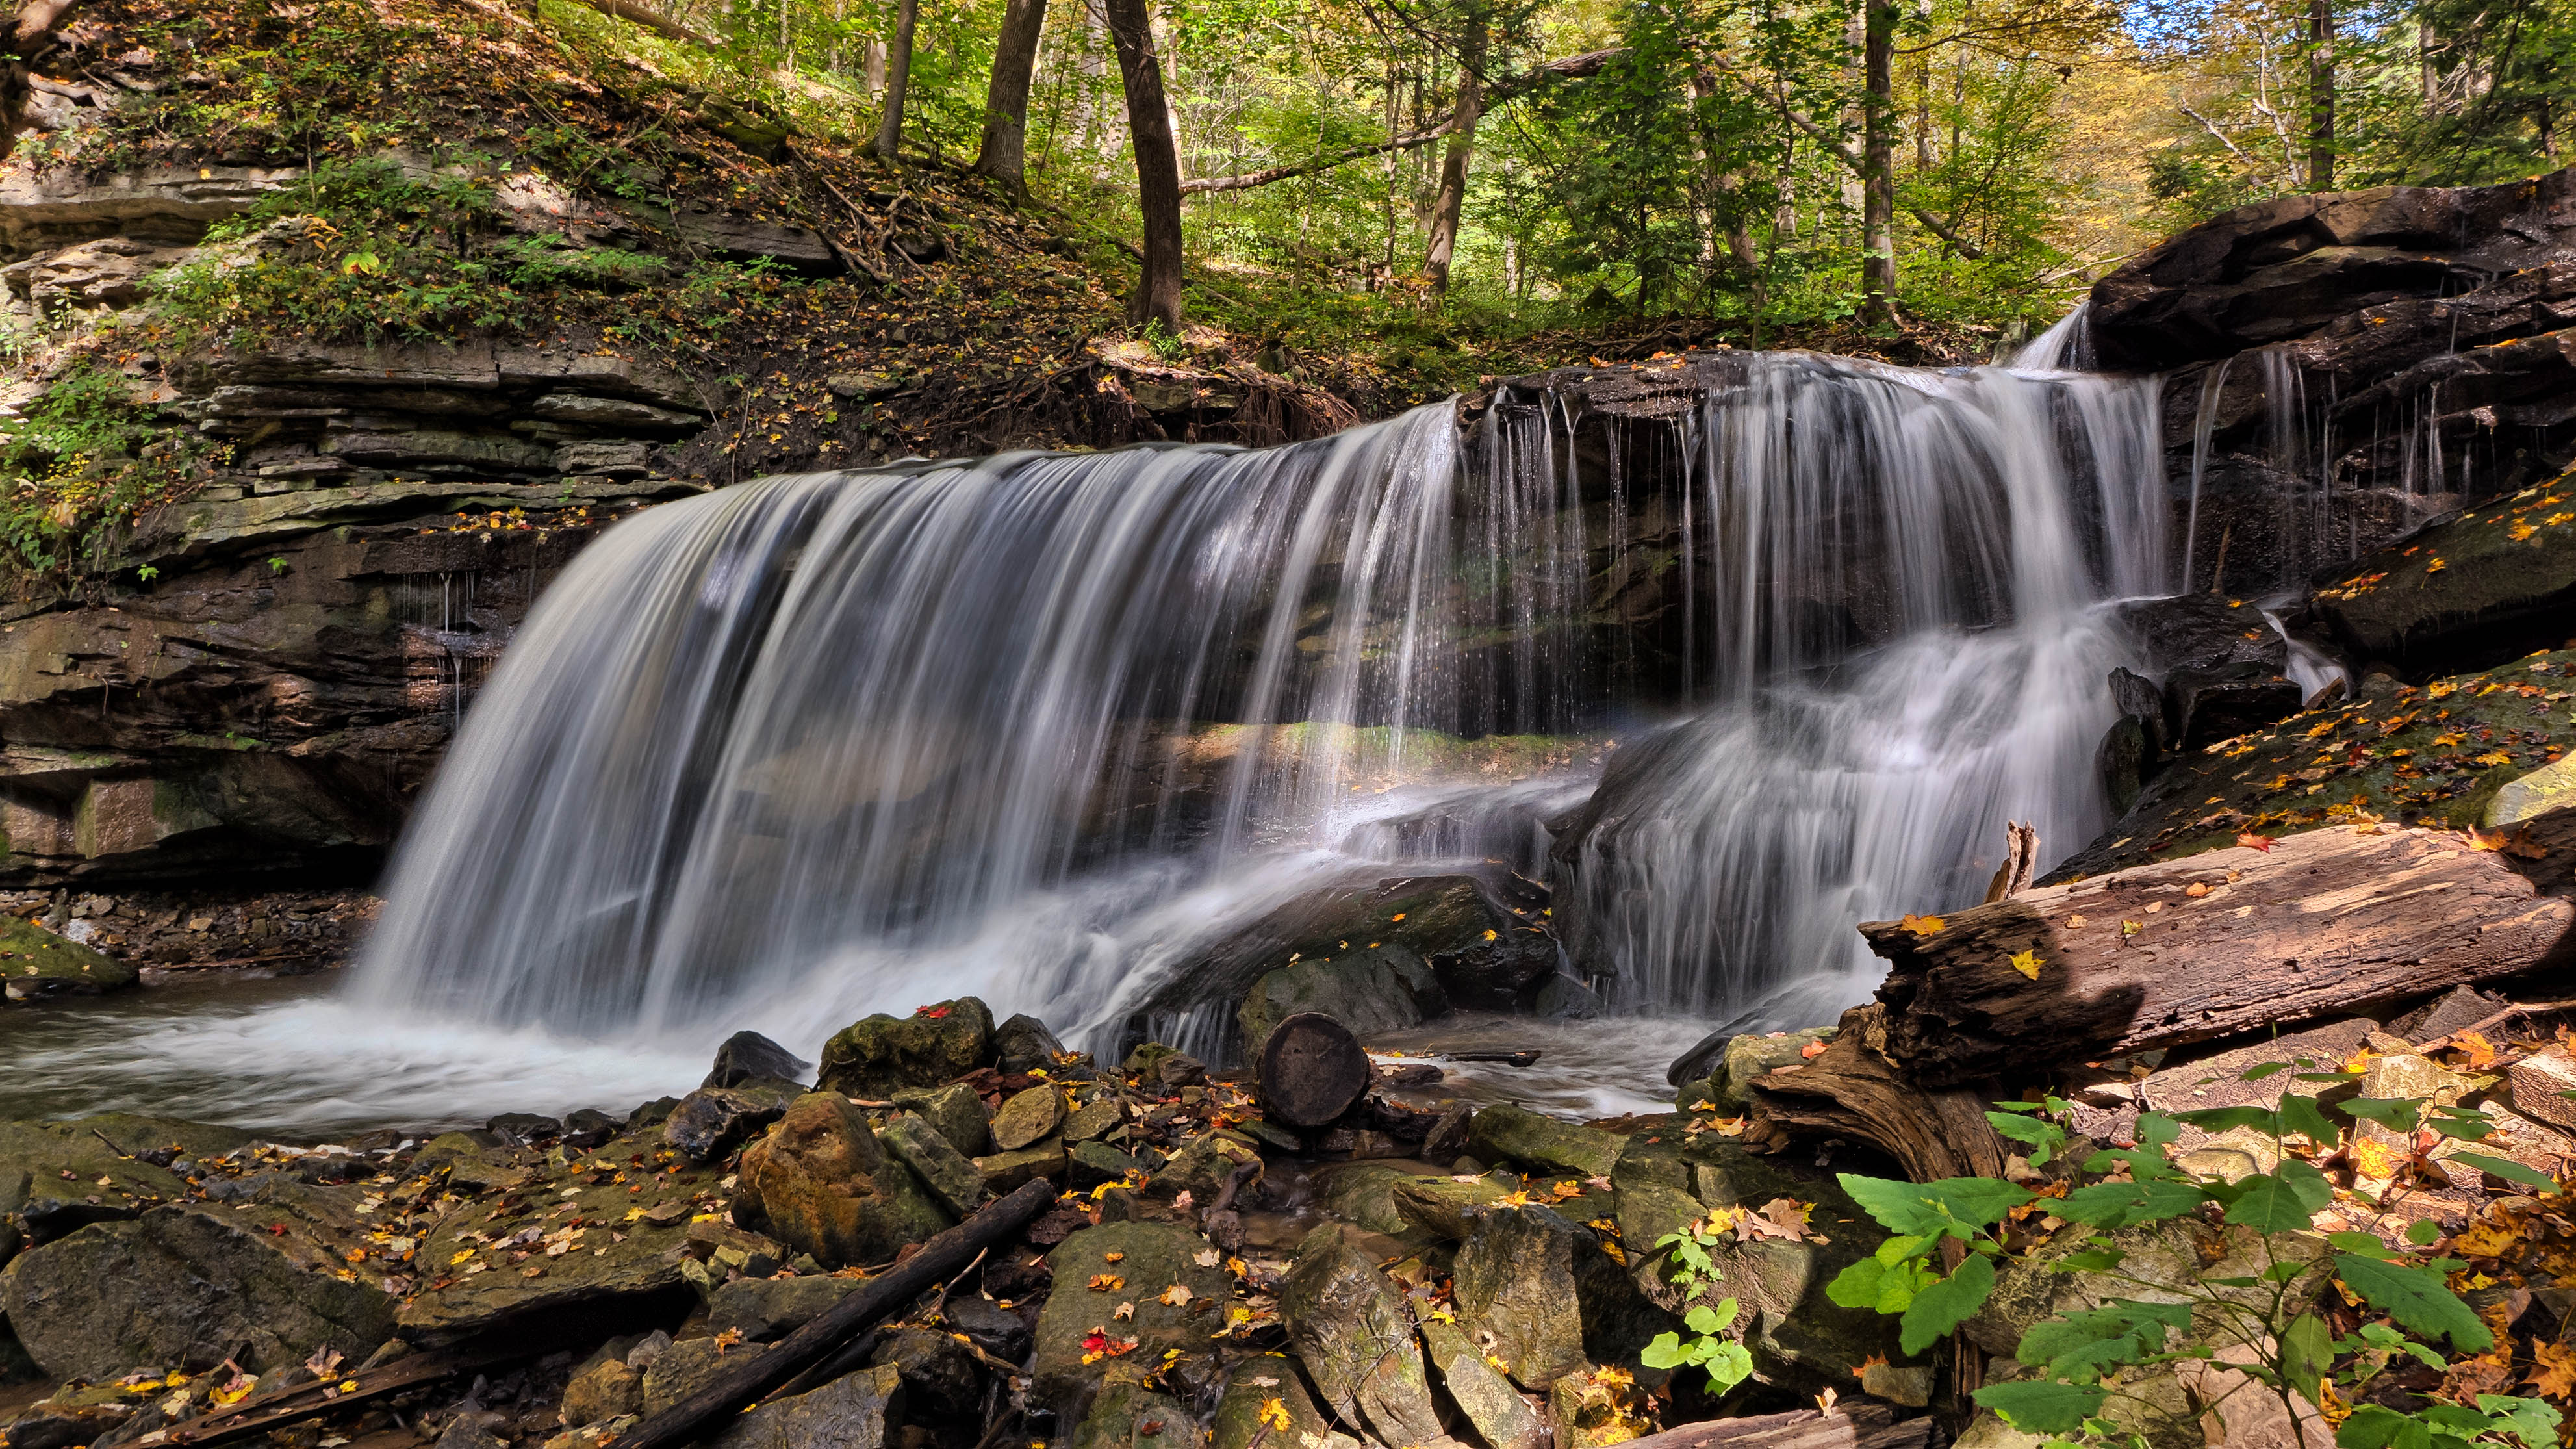 Free Fall Hd Wallpapers View Of Waterfall 183 Free Stock Photo